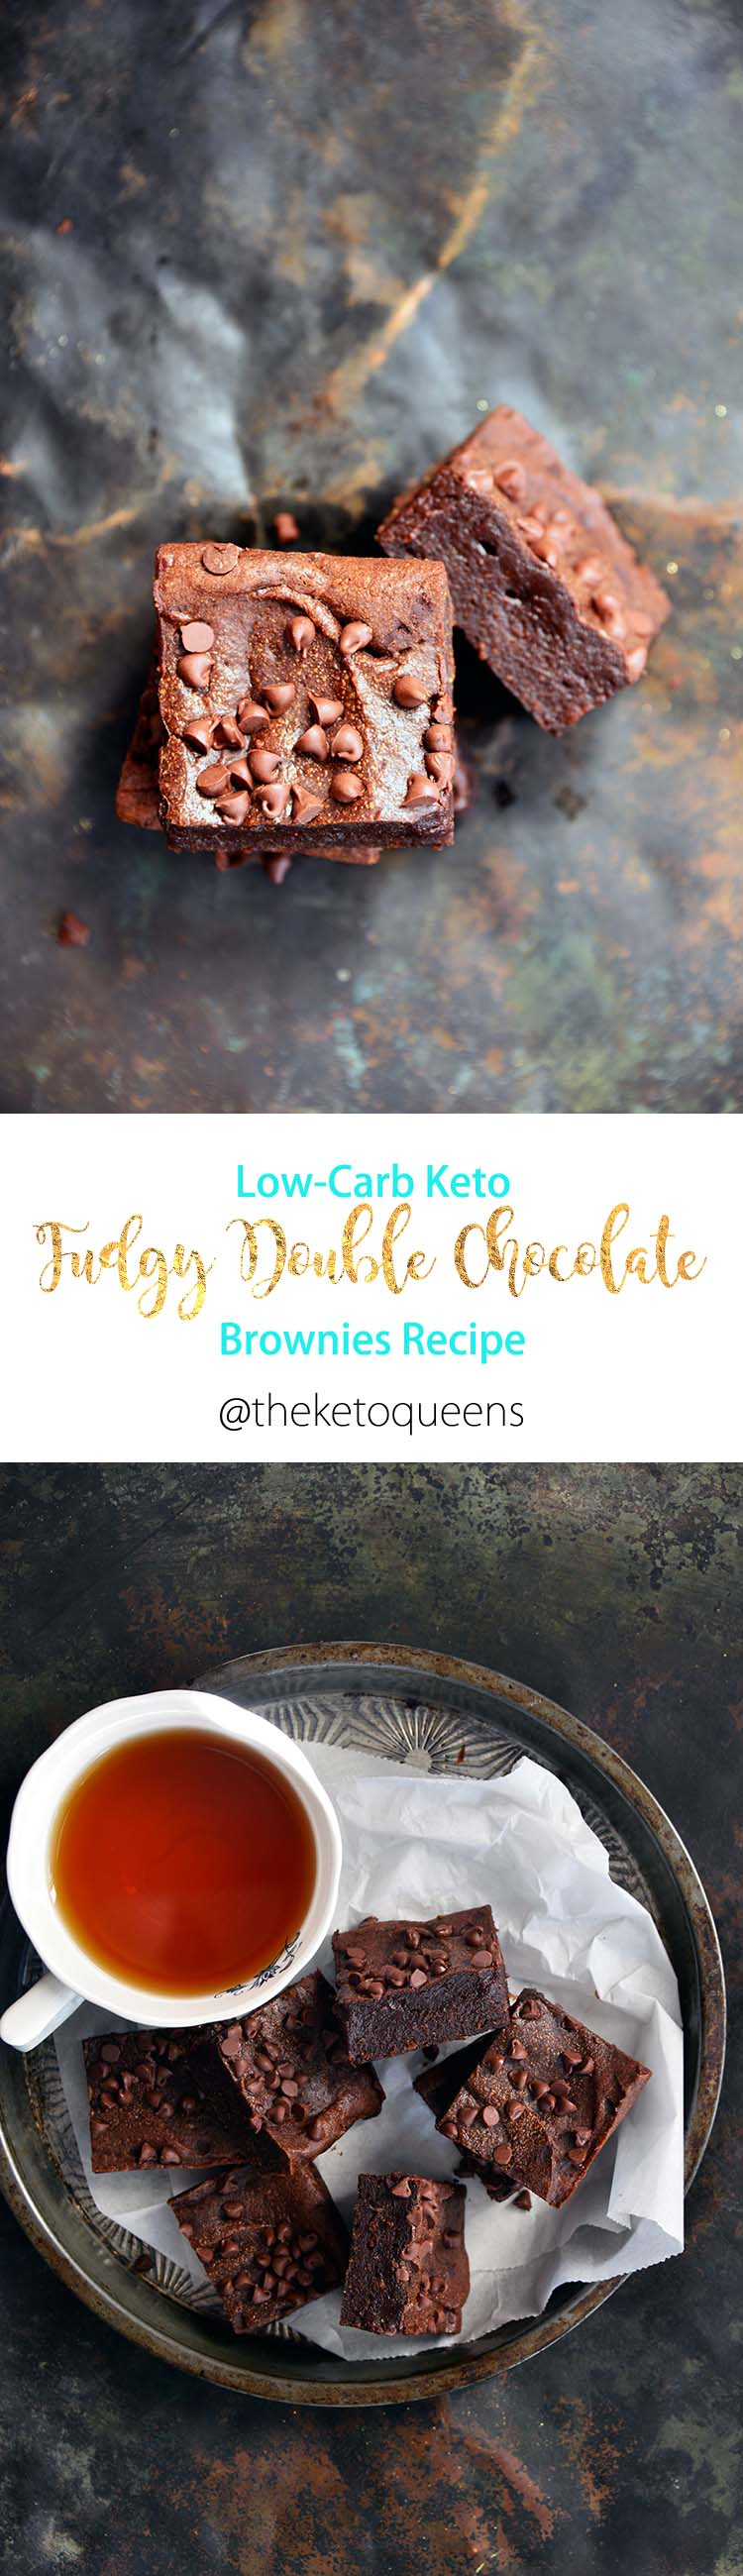 Low Carb Keto Fudgy Double Chocolate Brownies Recipe